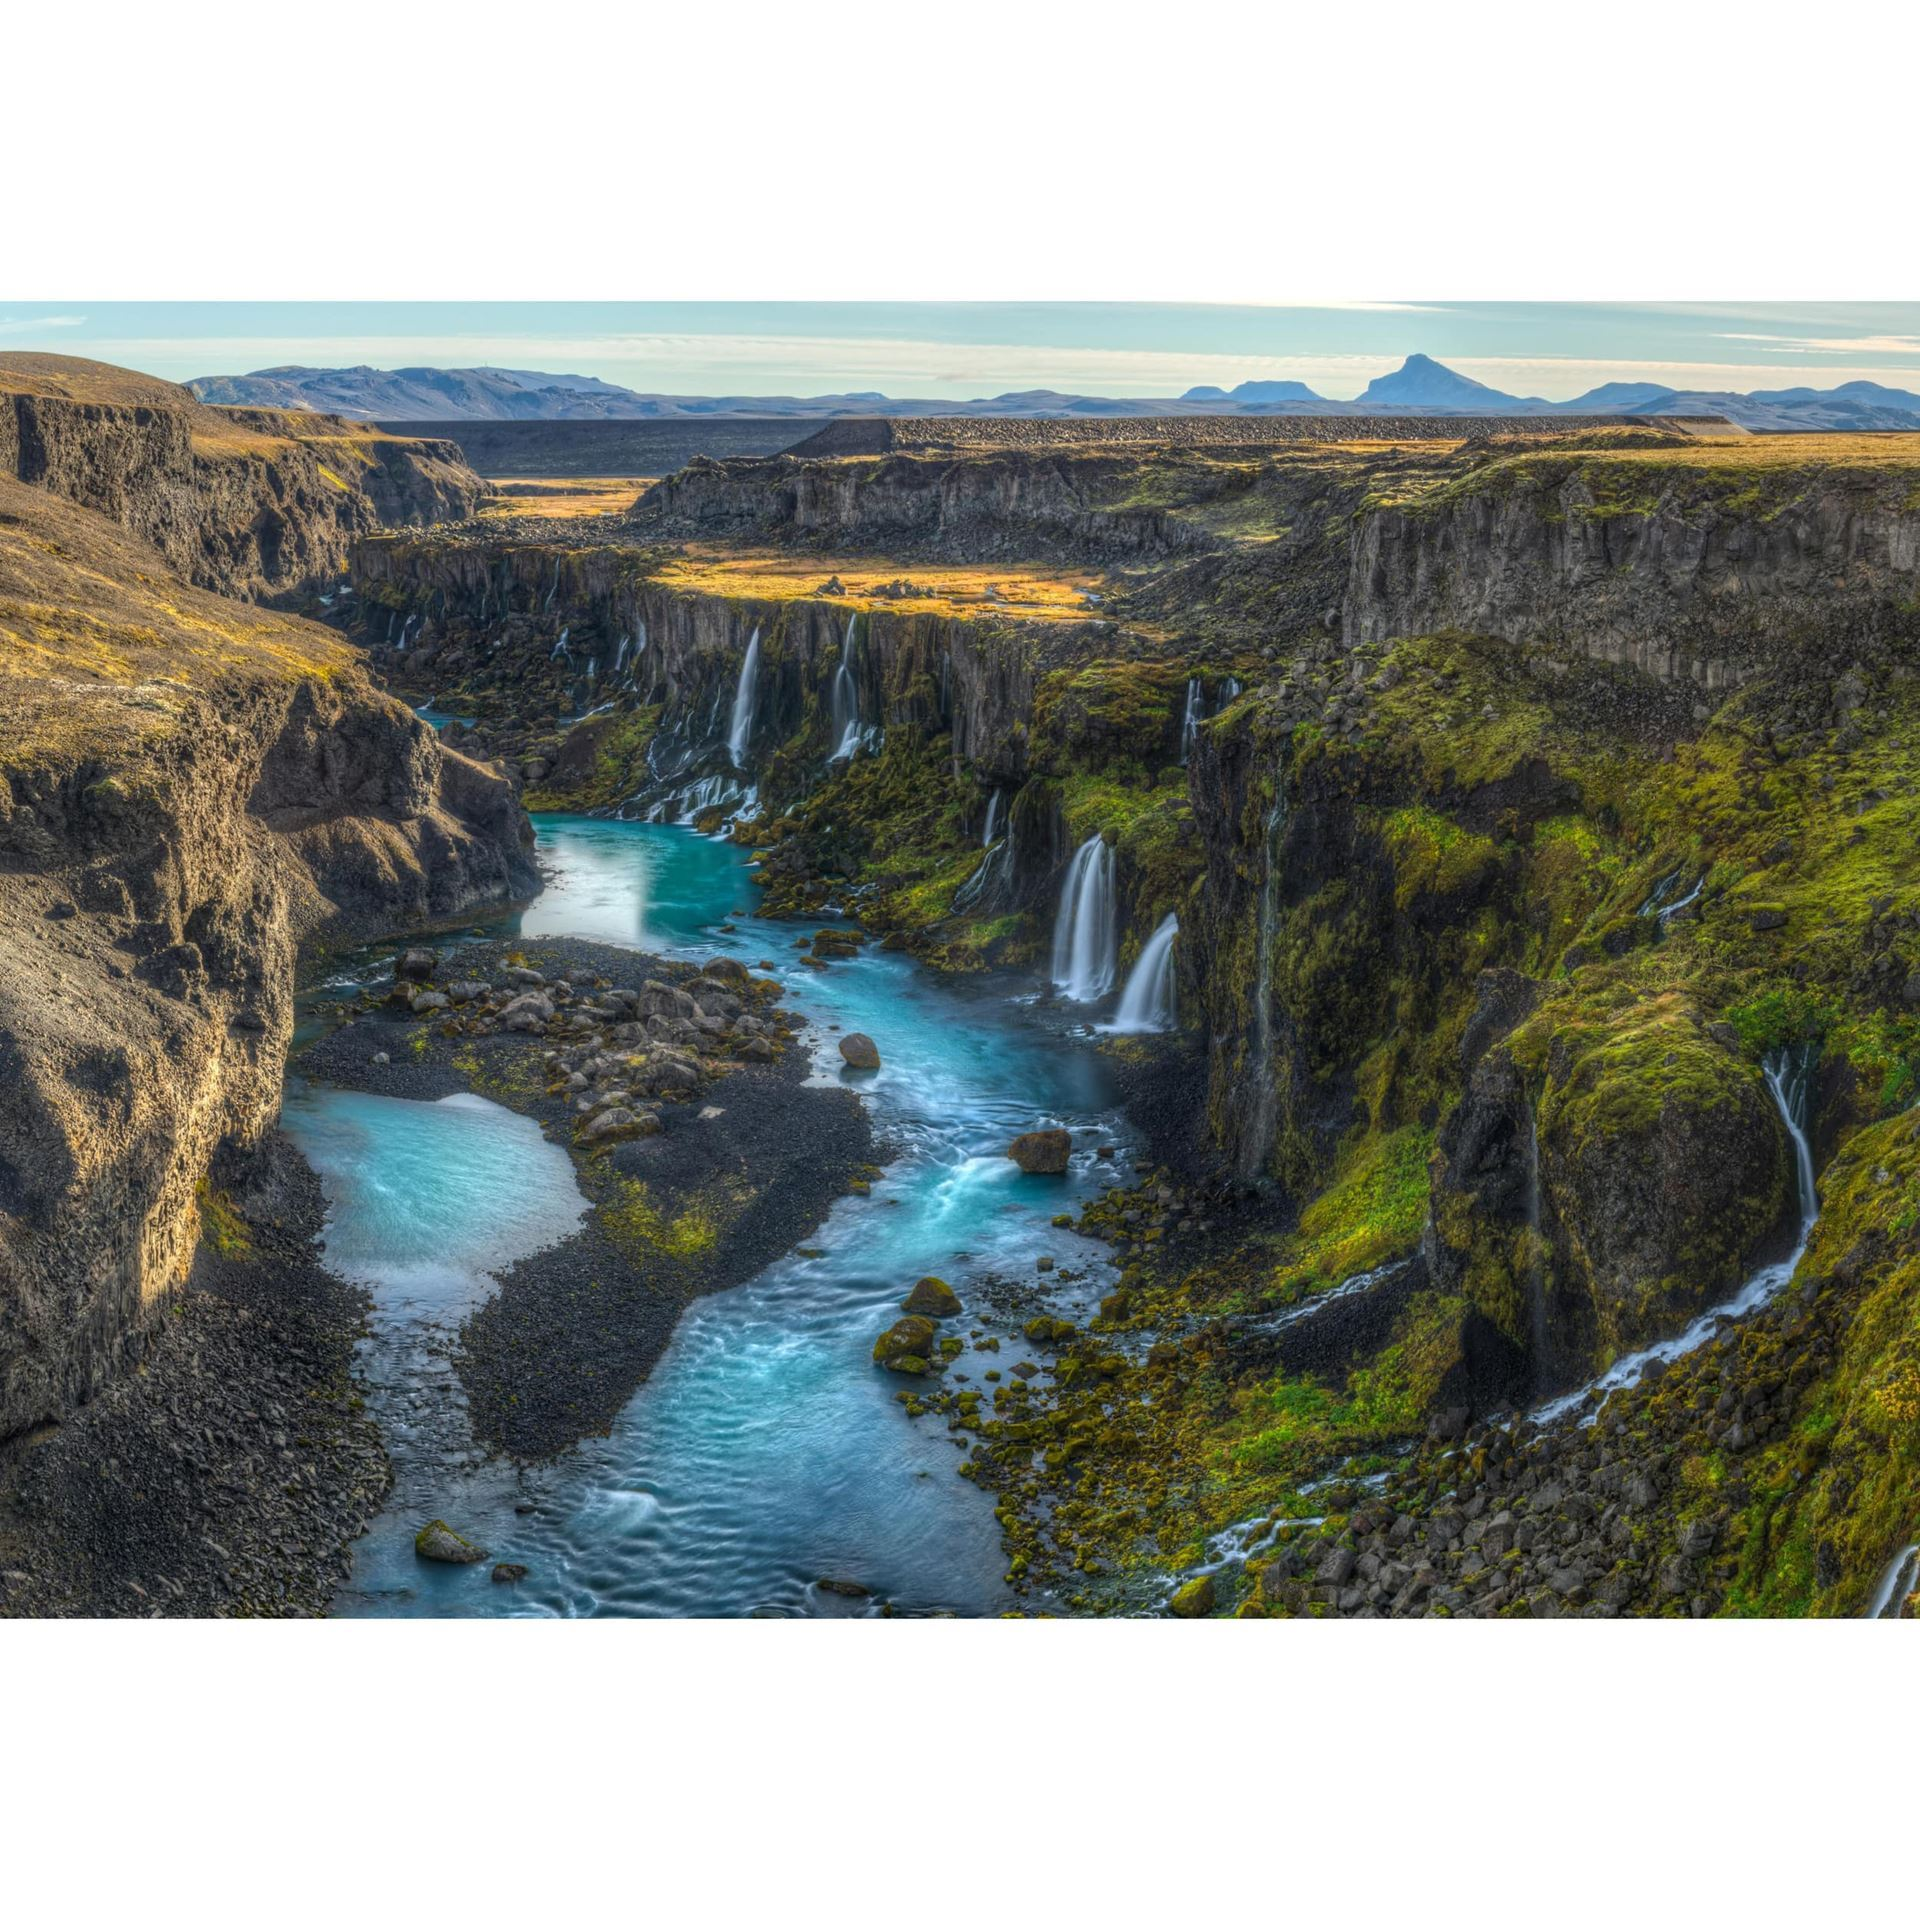 Iceland River 48x32